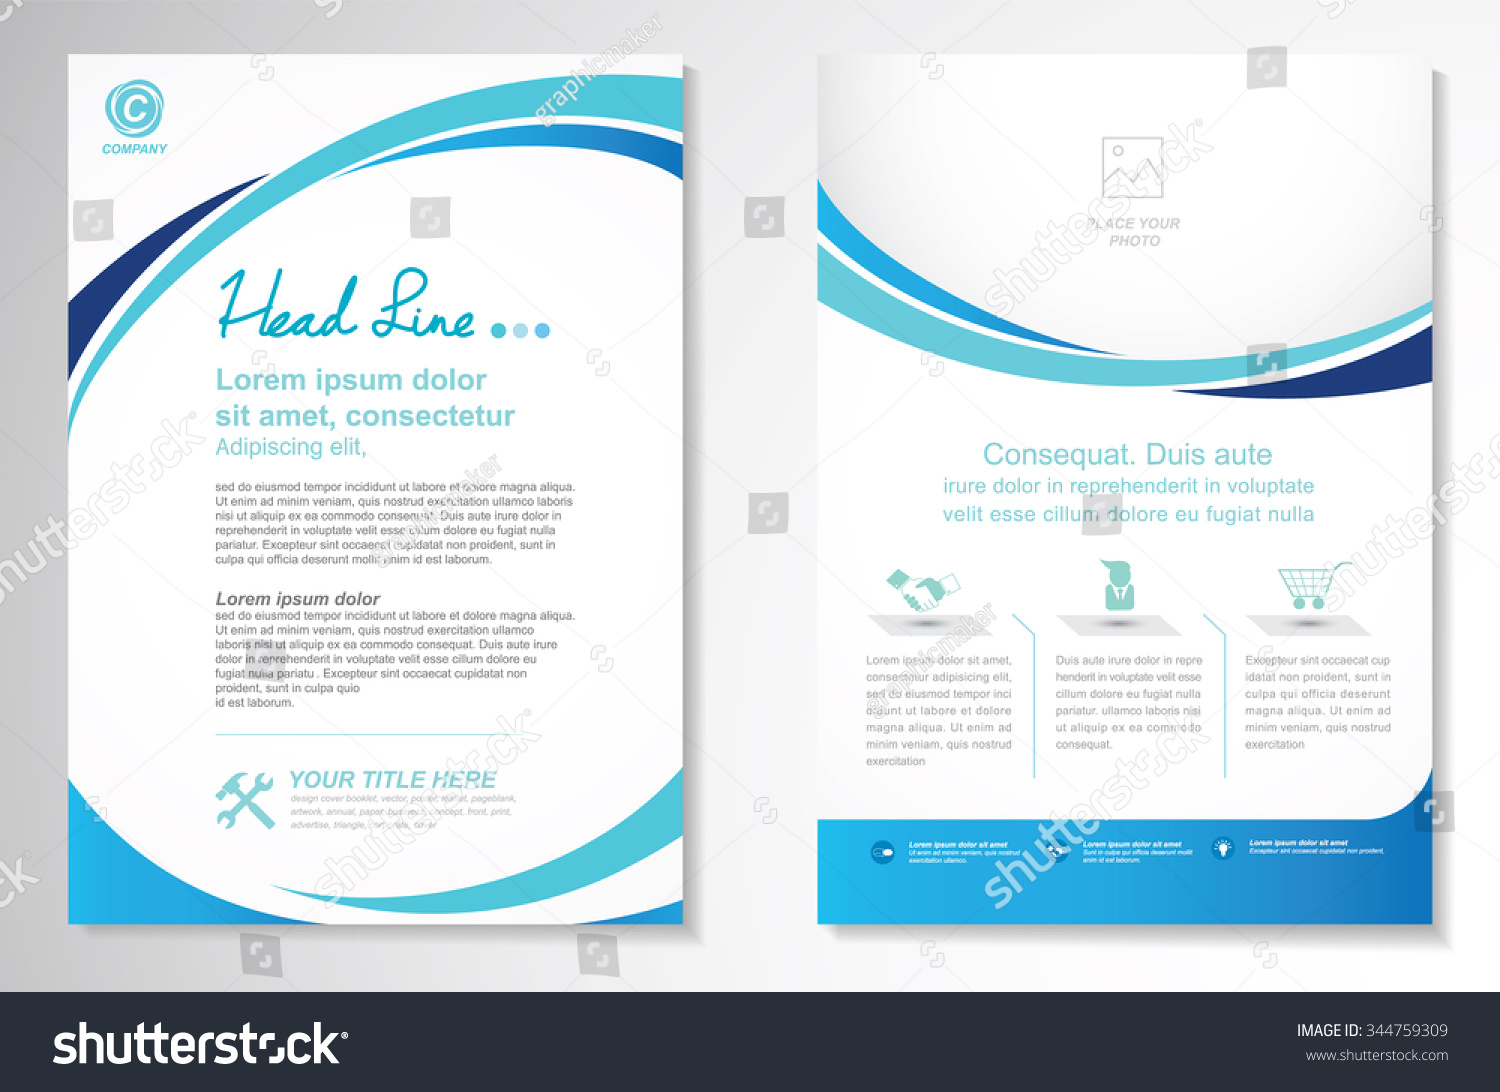 Brochure template layout cover design annual report magazine flyer - Vector Brochure Flyer Design Layout Template Stock Vector